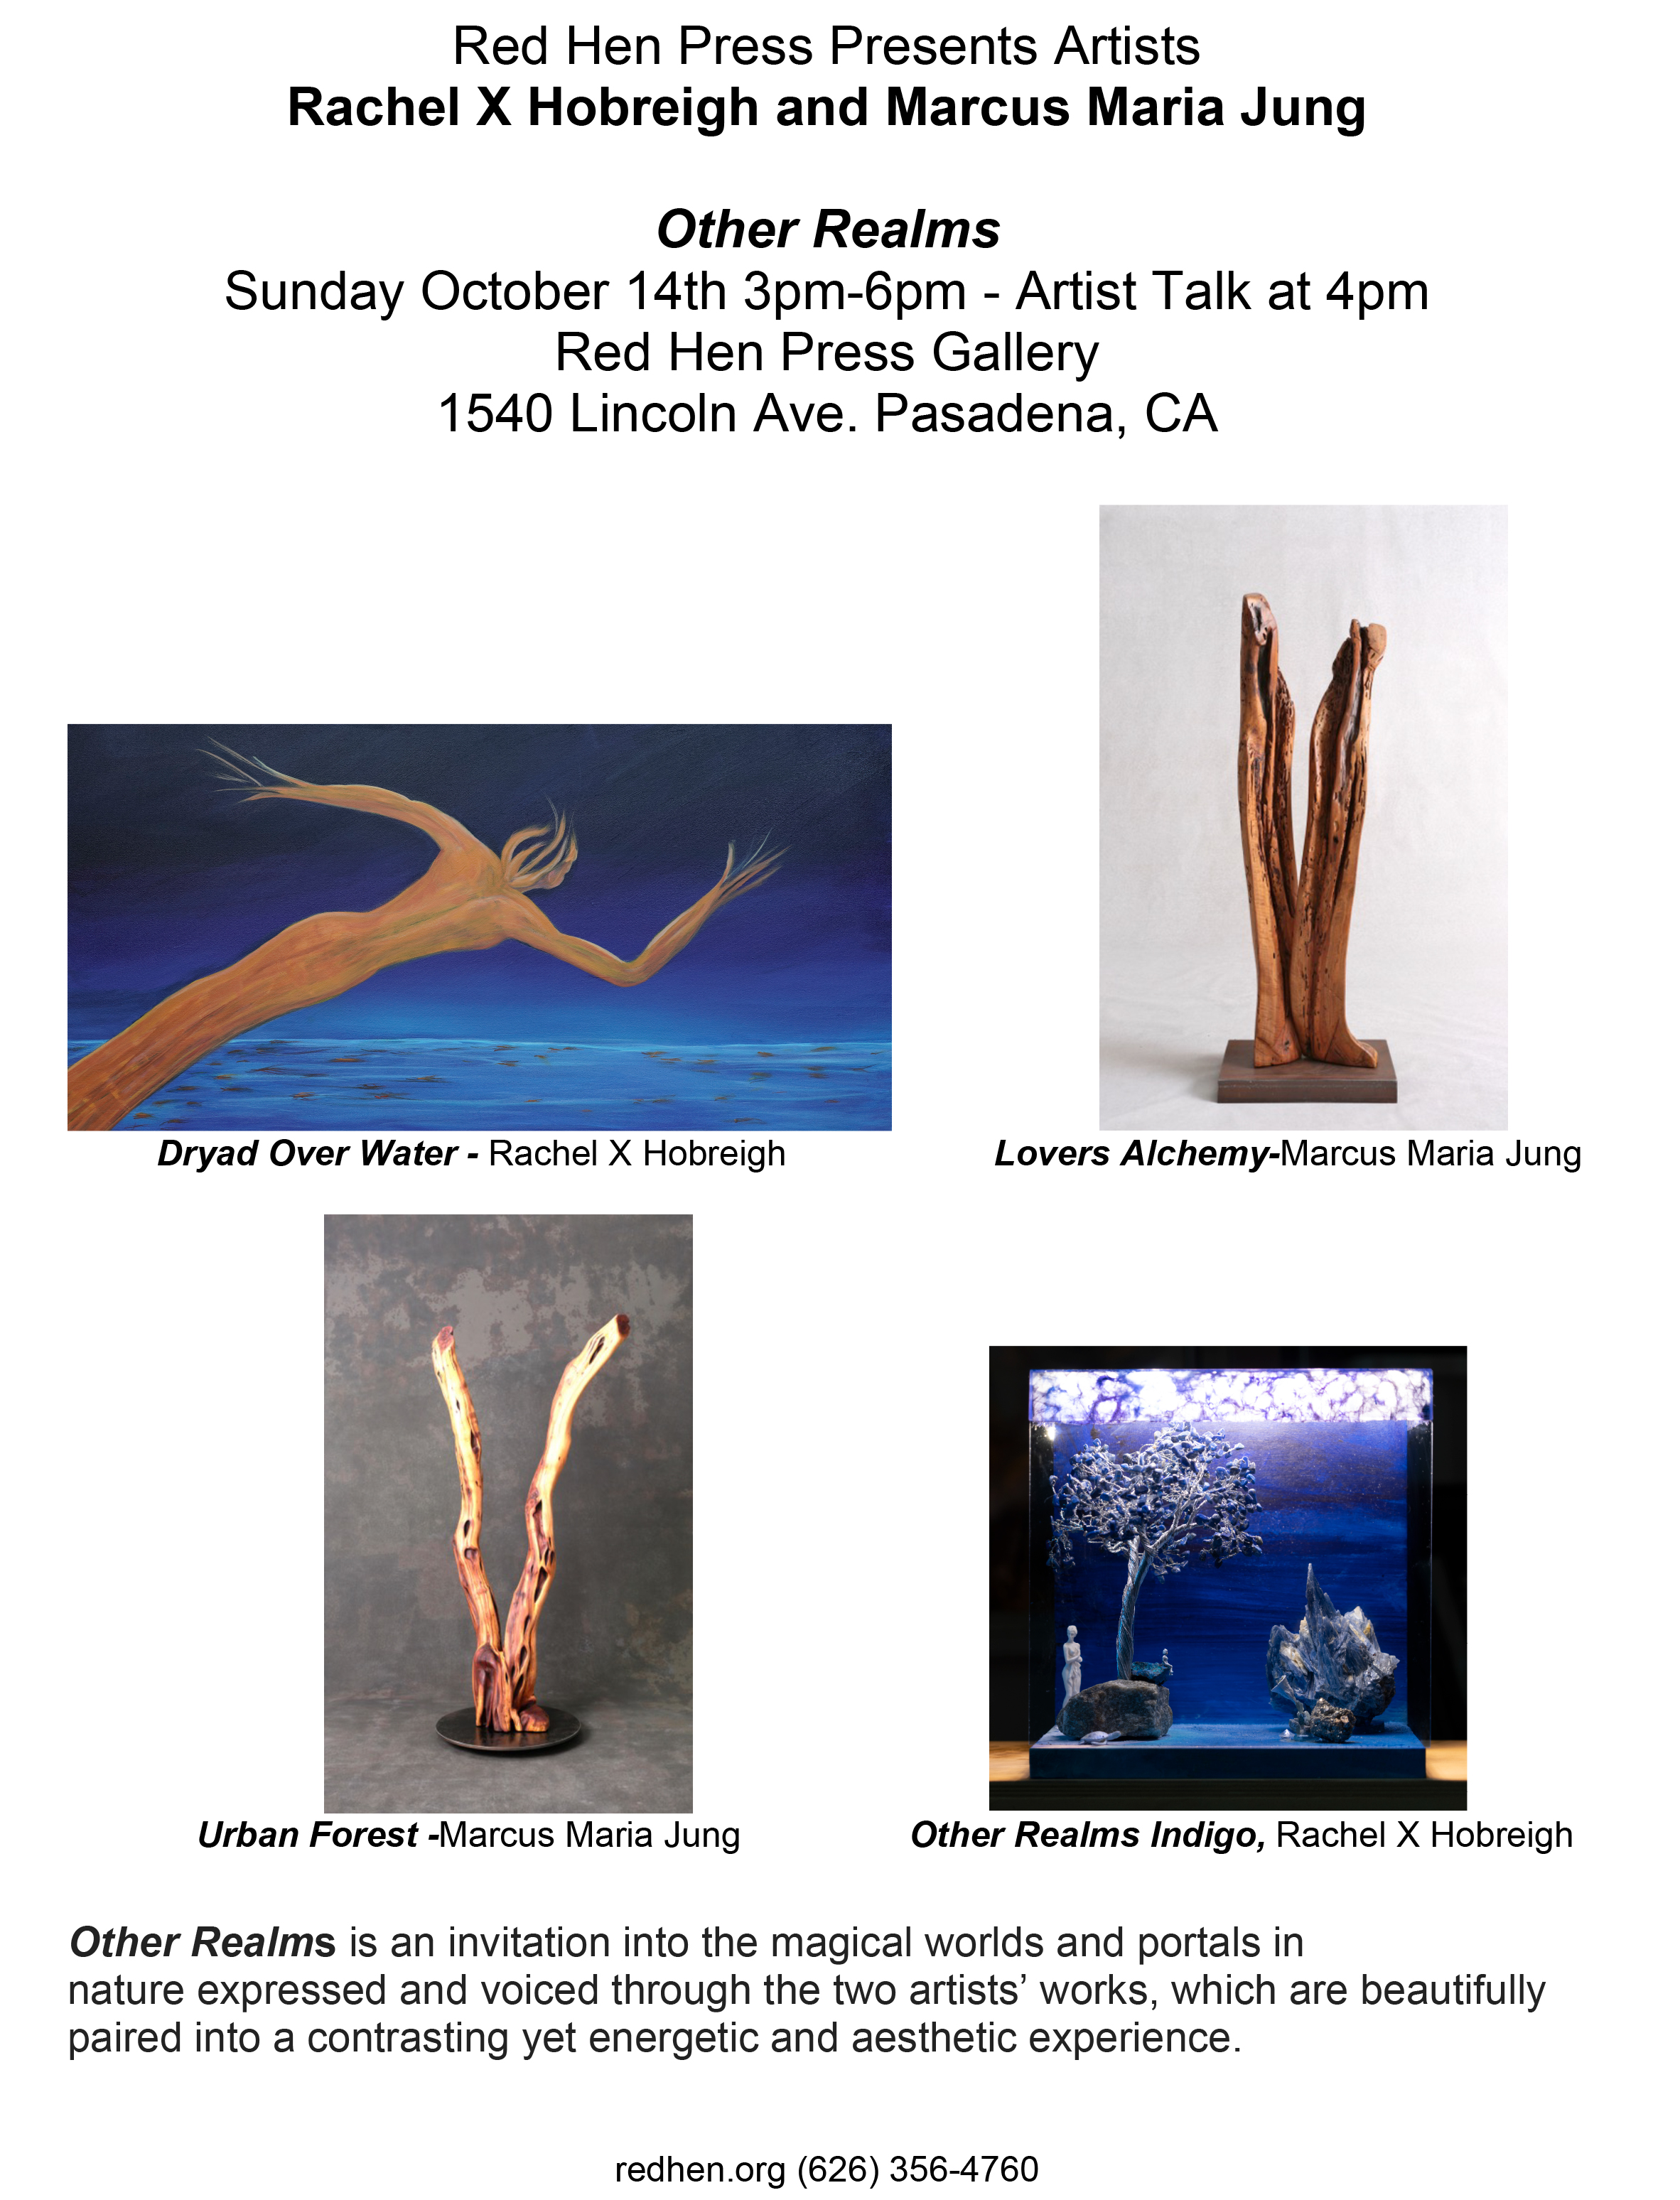 OPENING RECEPTION  OTHER REALMS RED HEN PRESS, PASADENA, CA SUNDAY, OCTOBER 14th, 2018, ARTIST TALK 4 PM